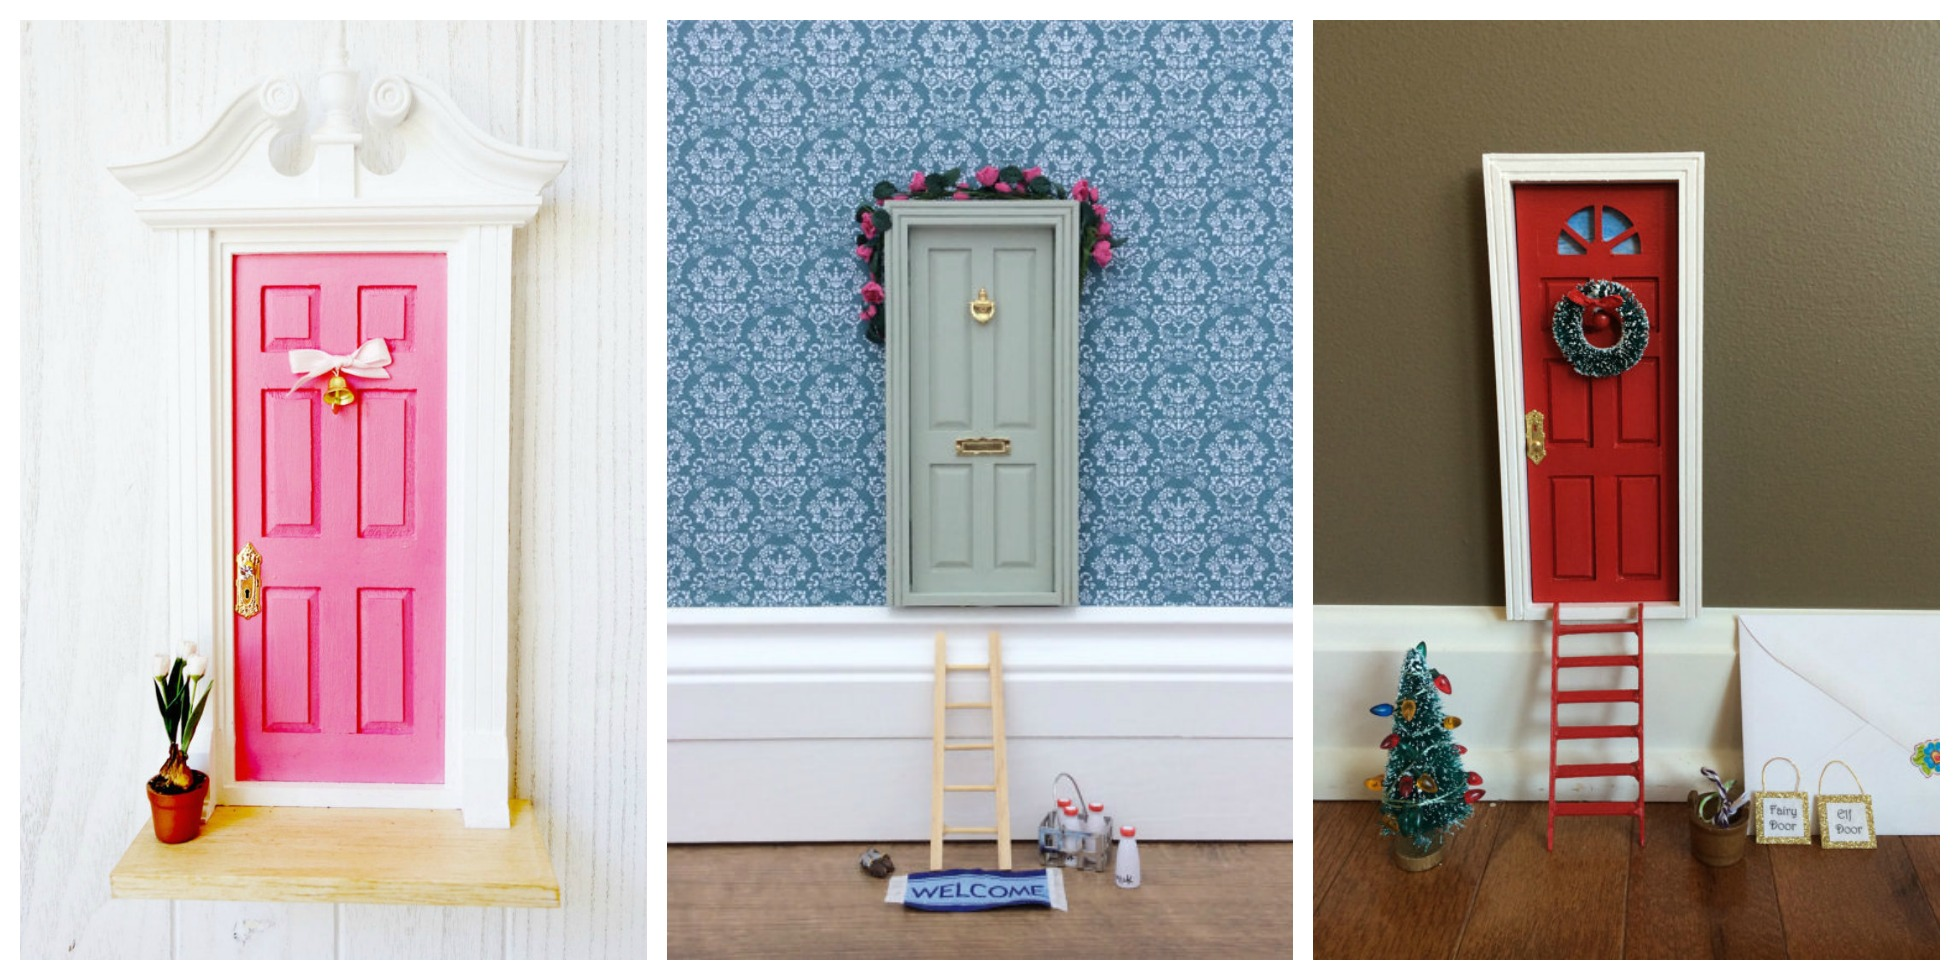 Gnome Garden: 10 Enchanting Fairy Doors You'll Want In Your Own Home